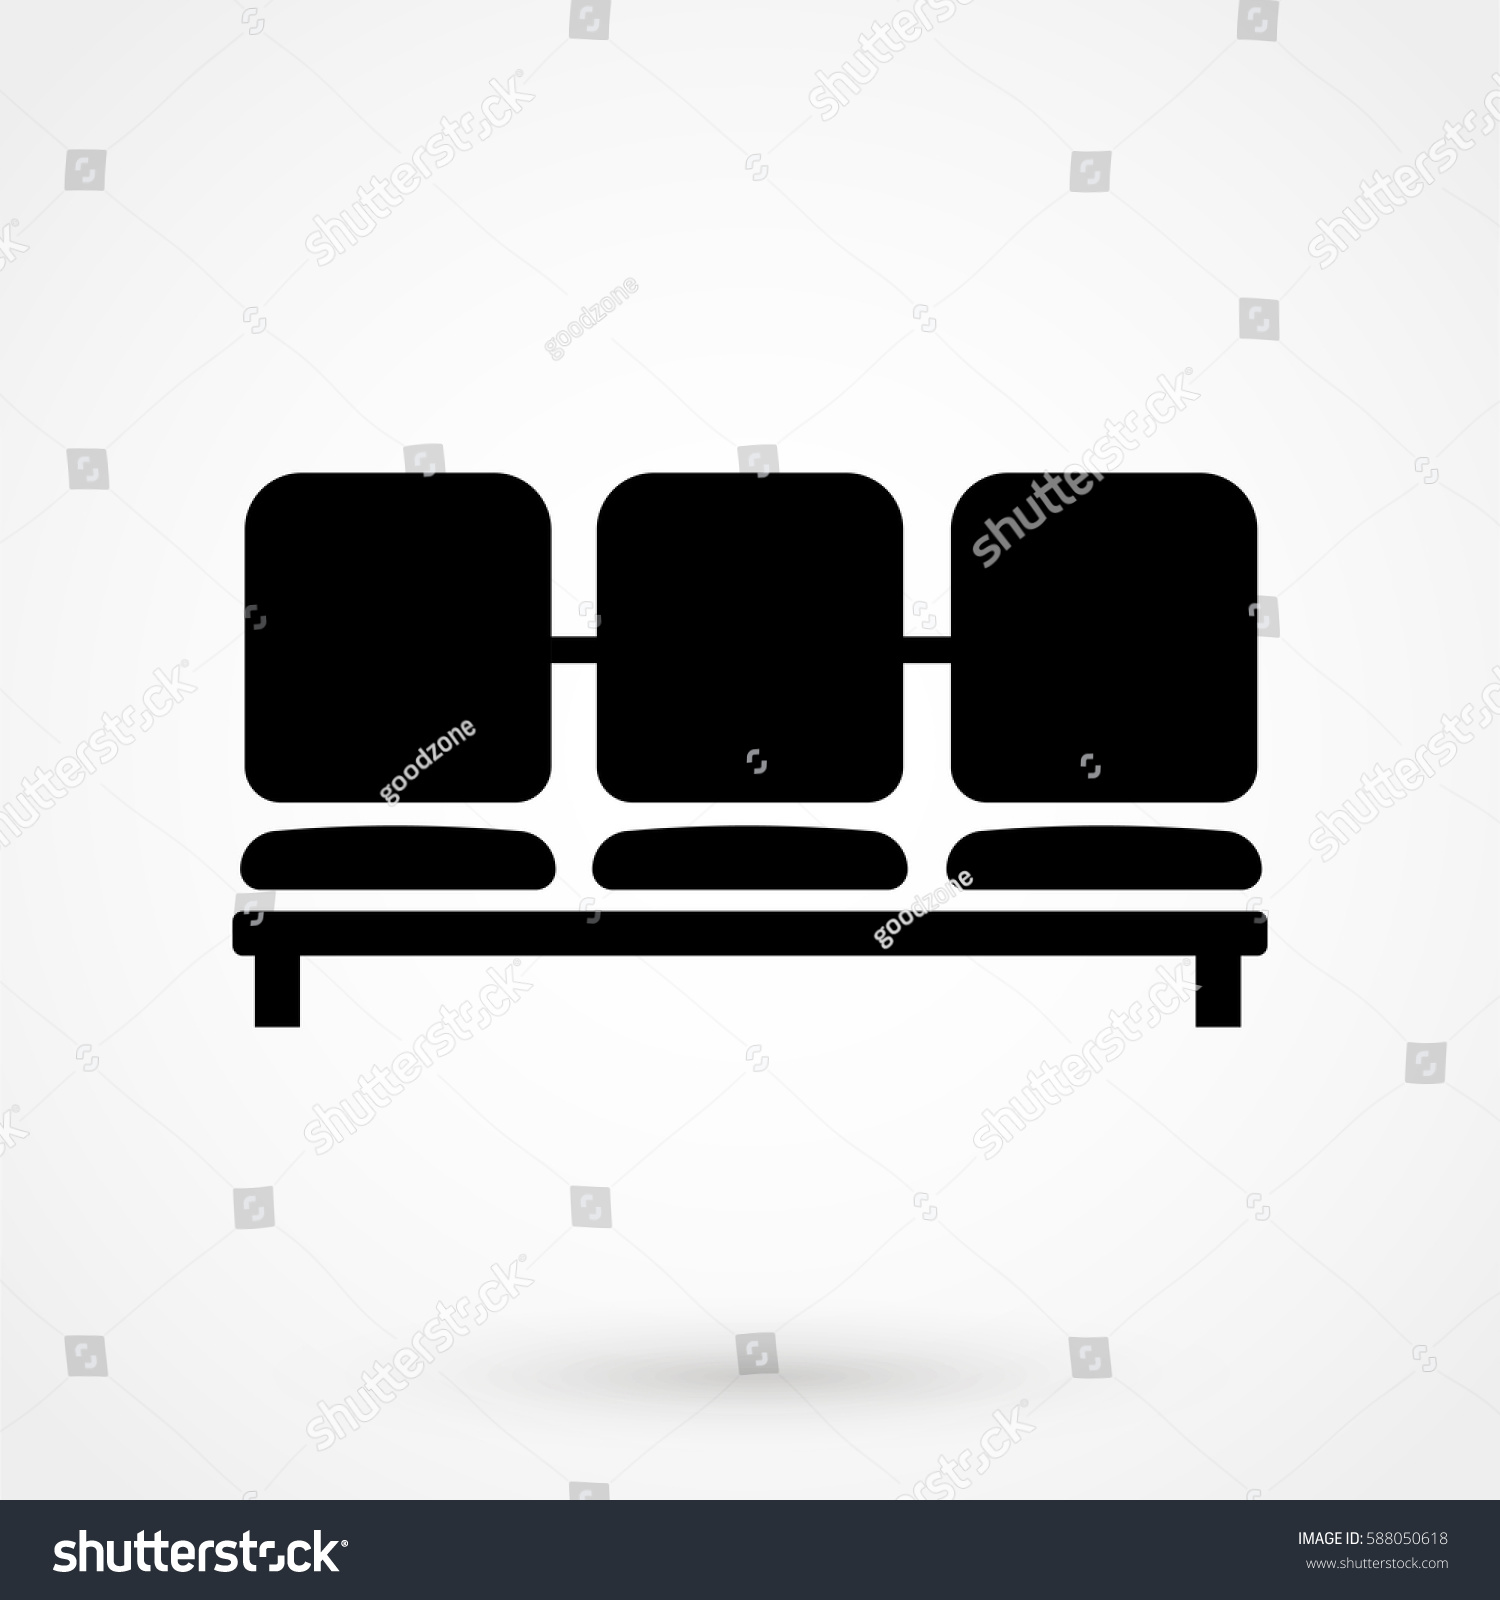 Airport Seat Vector Icon Waiting Room Stock Vector